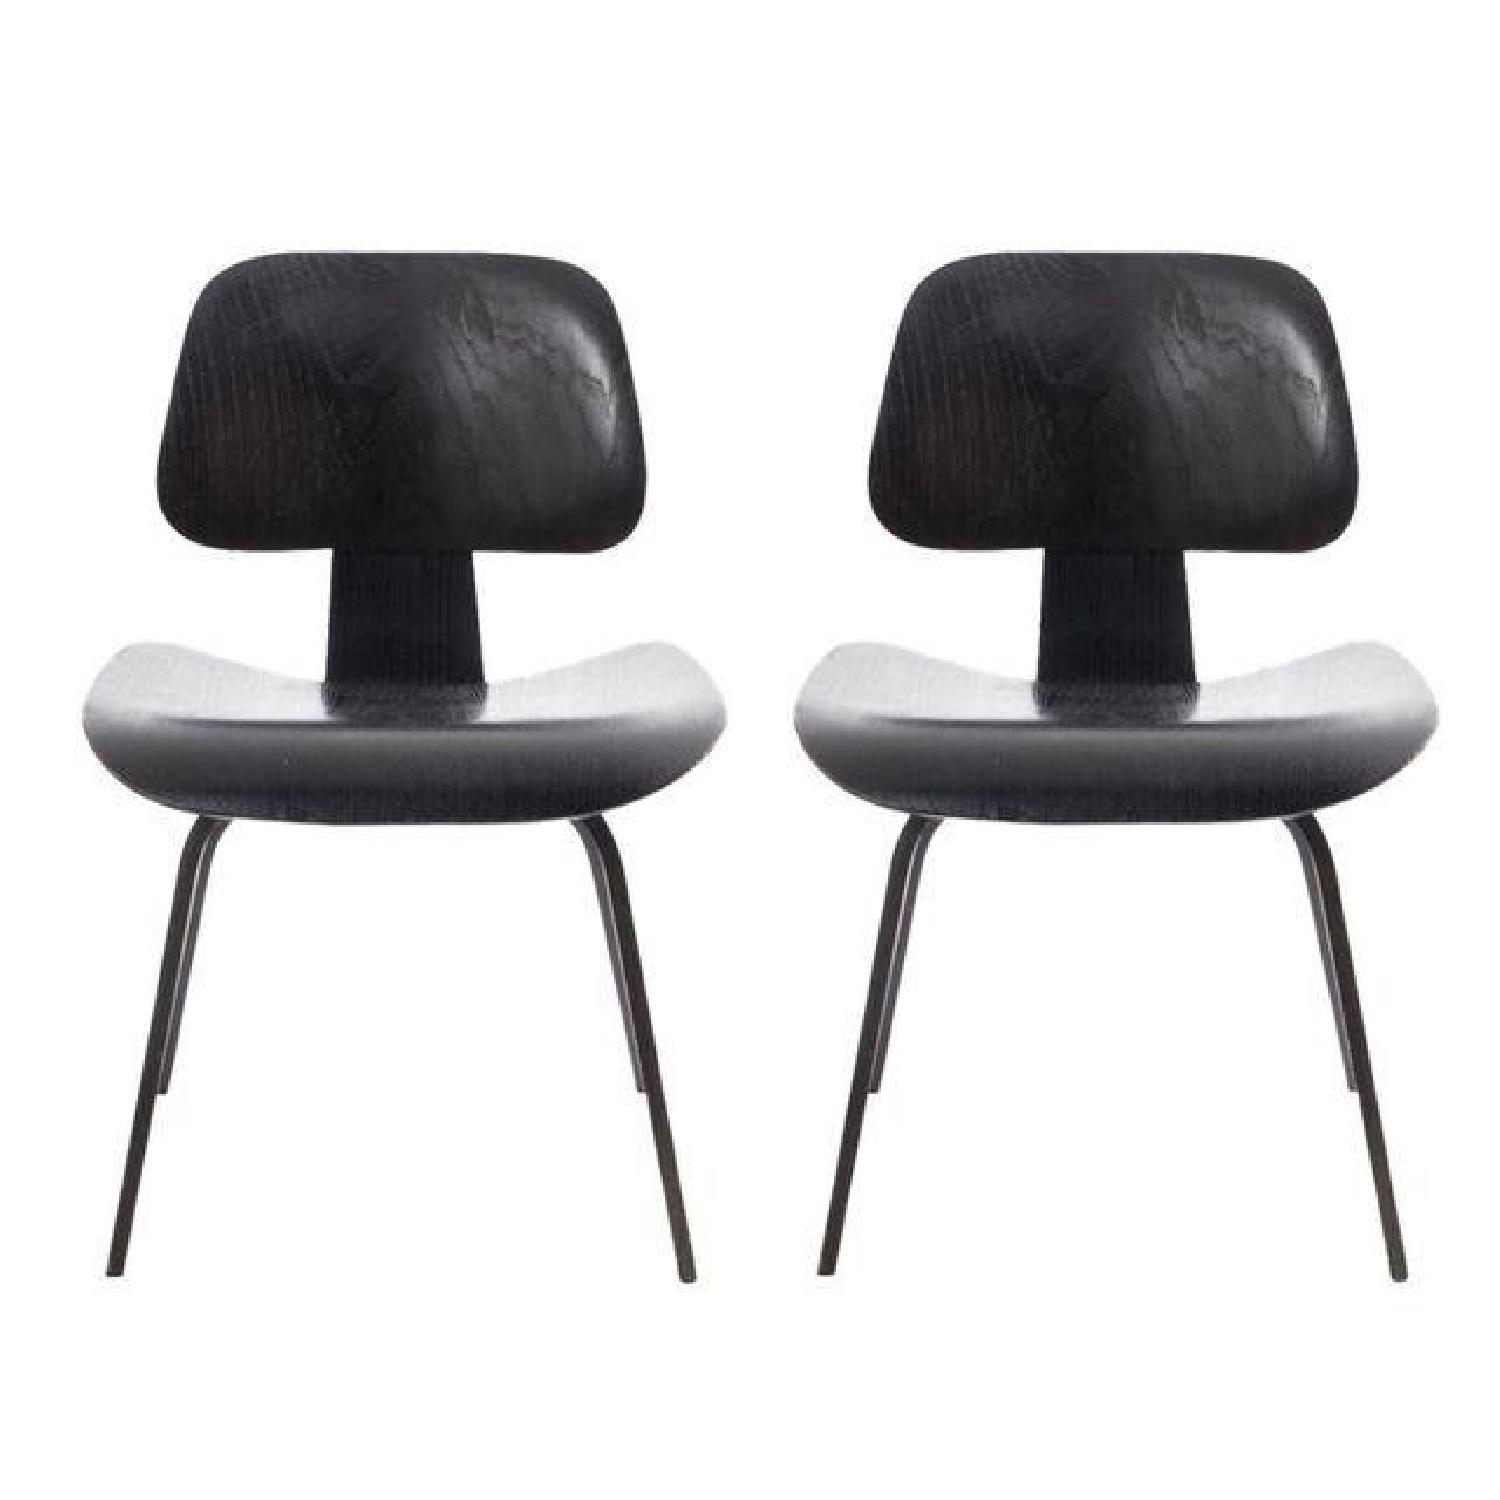 Eames DCW Chairs - image-0